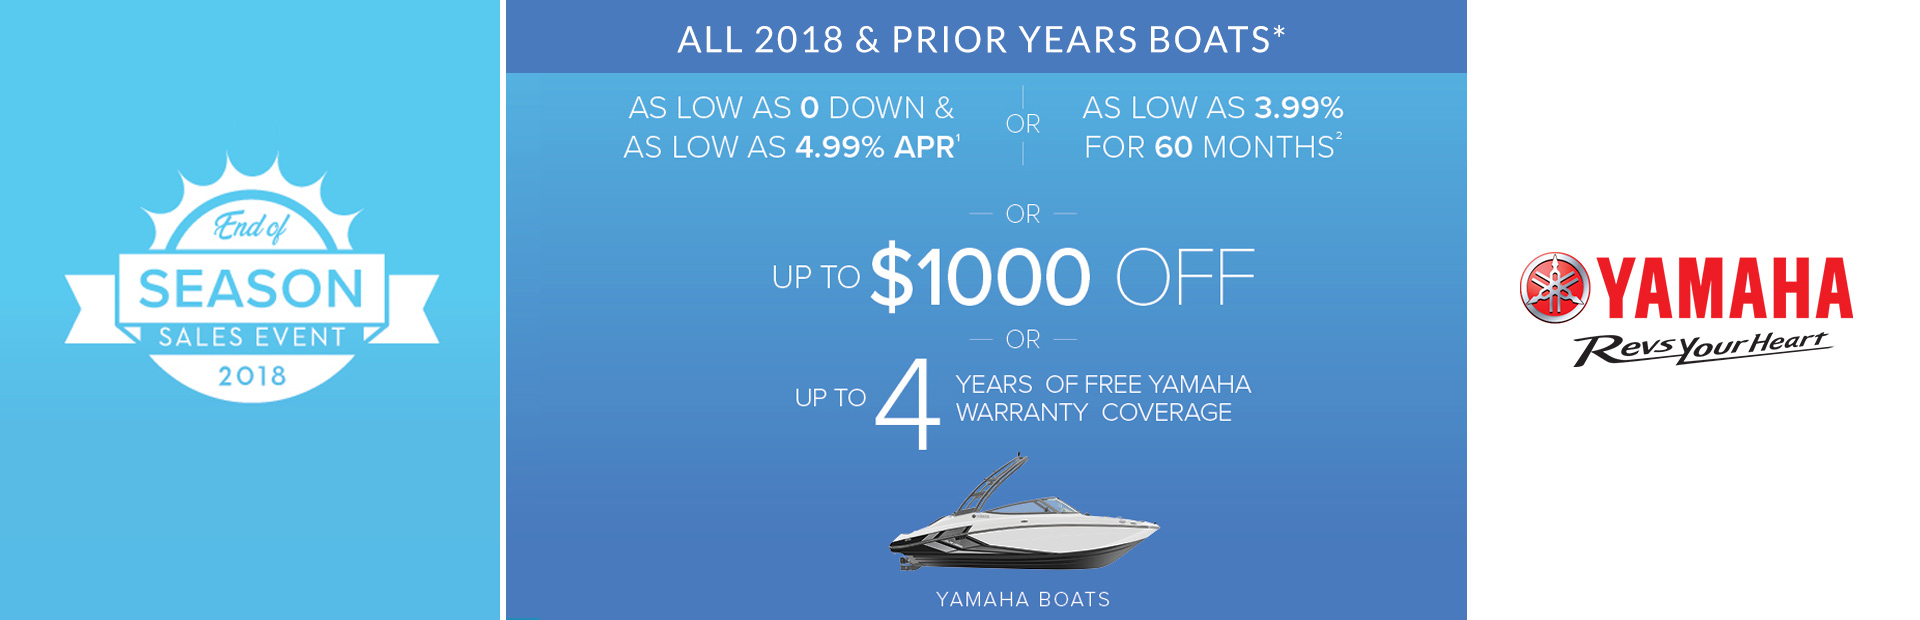 Yamaha: End of Season Sales Event - 2018 and Prior Years